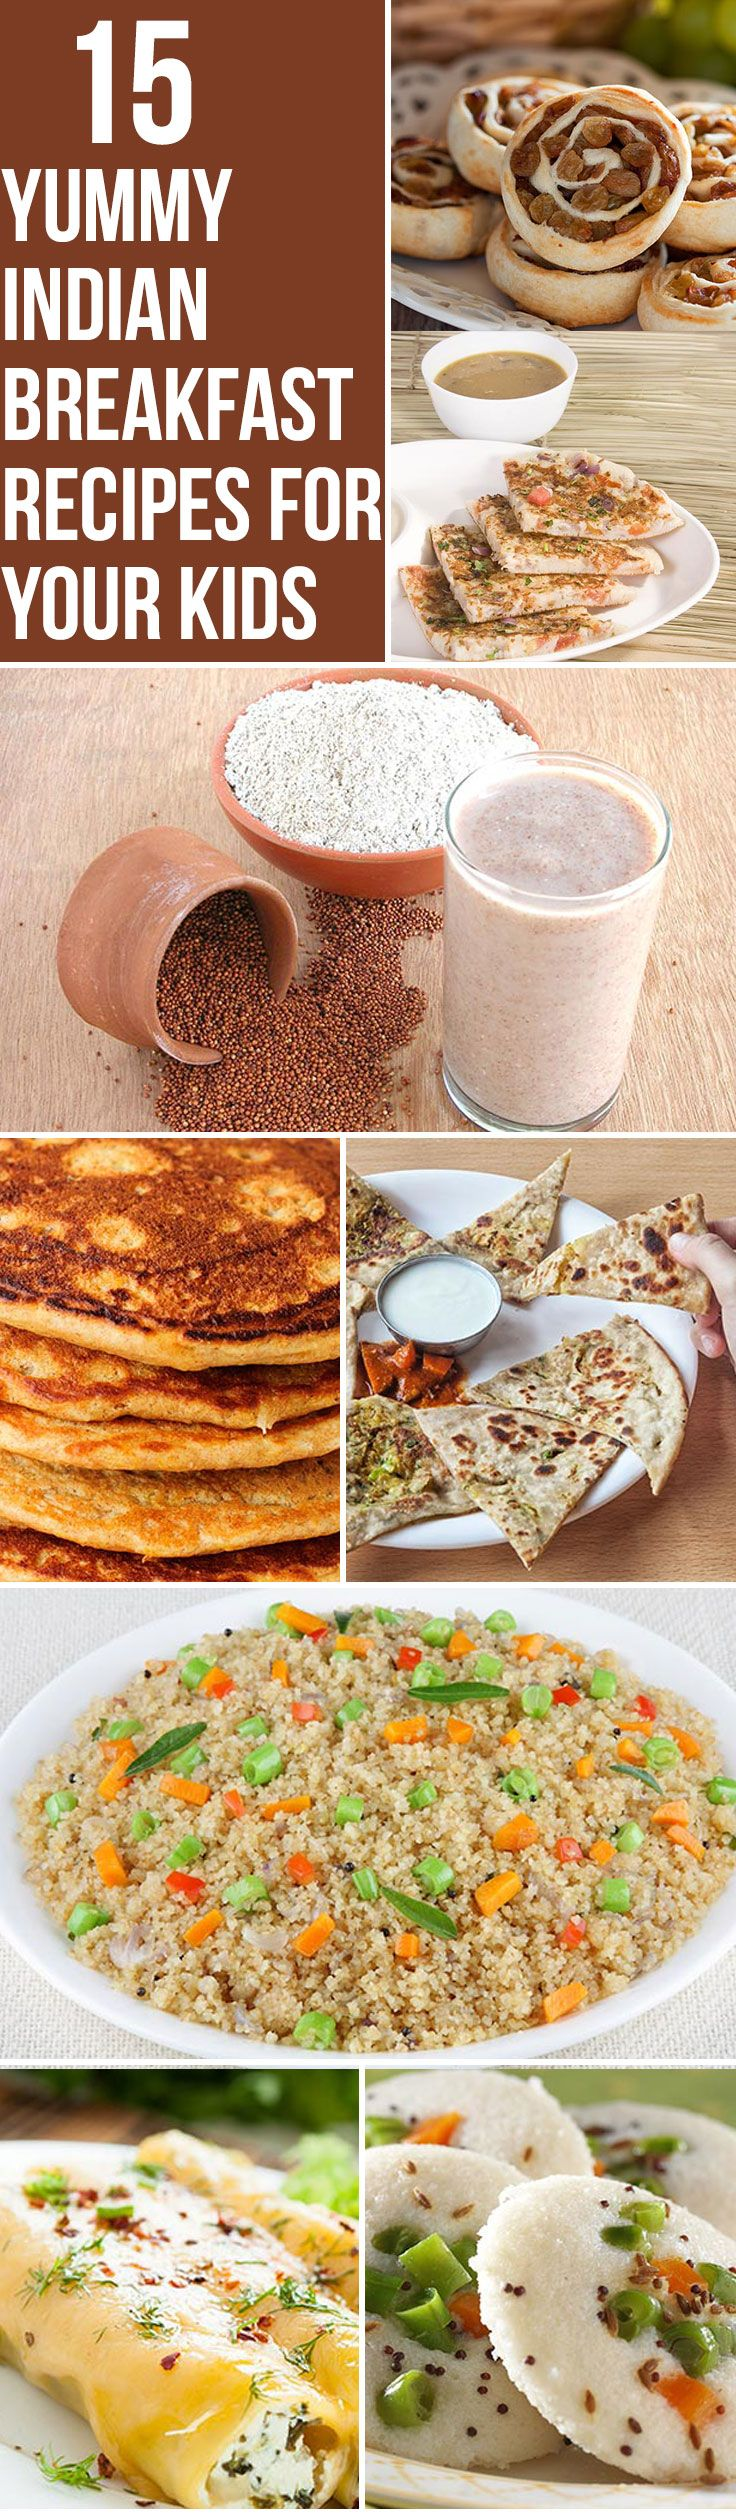 Top 15 yummy indian breakfast recipes for your kids indian top 15 yummy indian breakfast recipes for your kids forumfinder Image collections